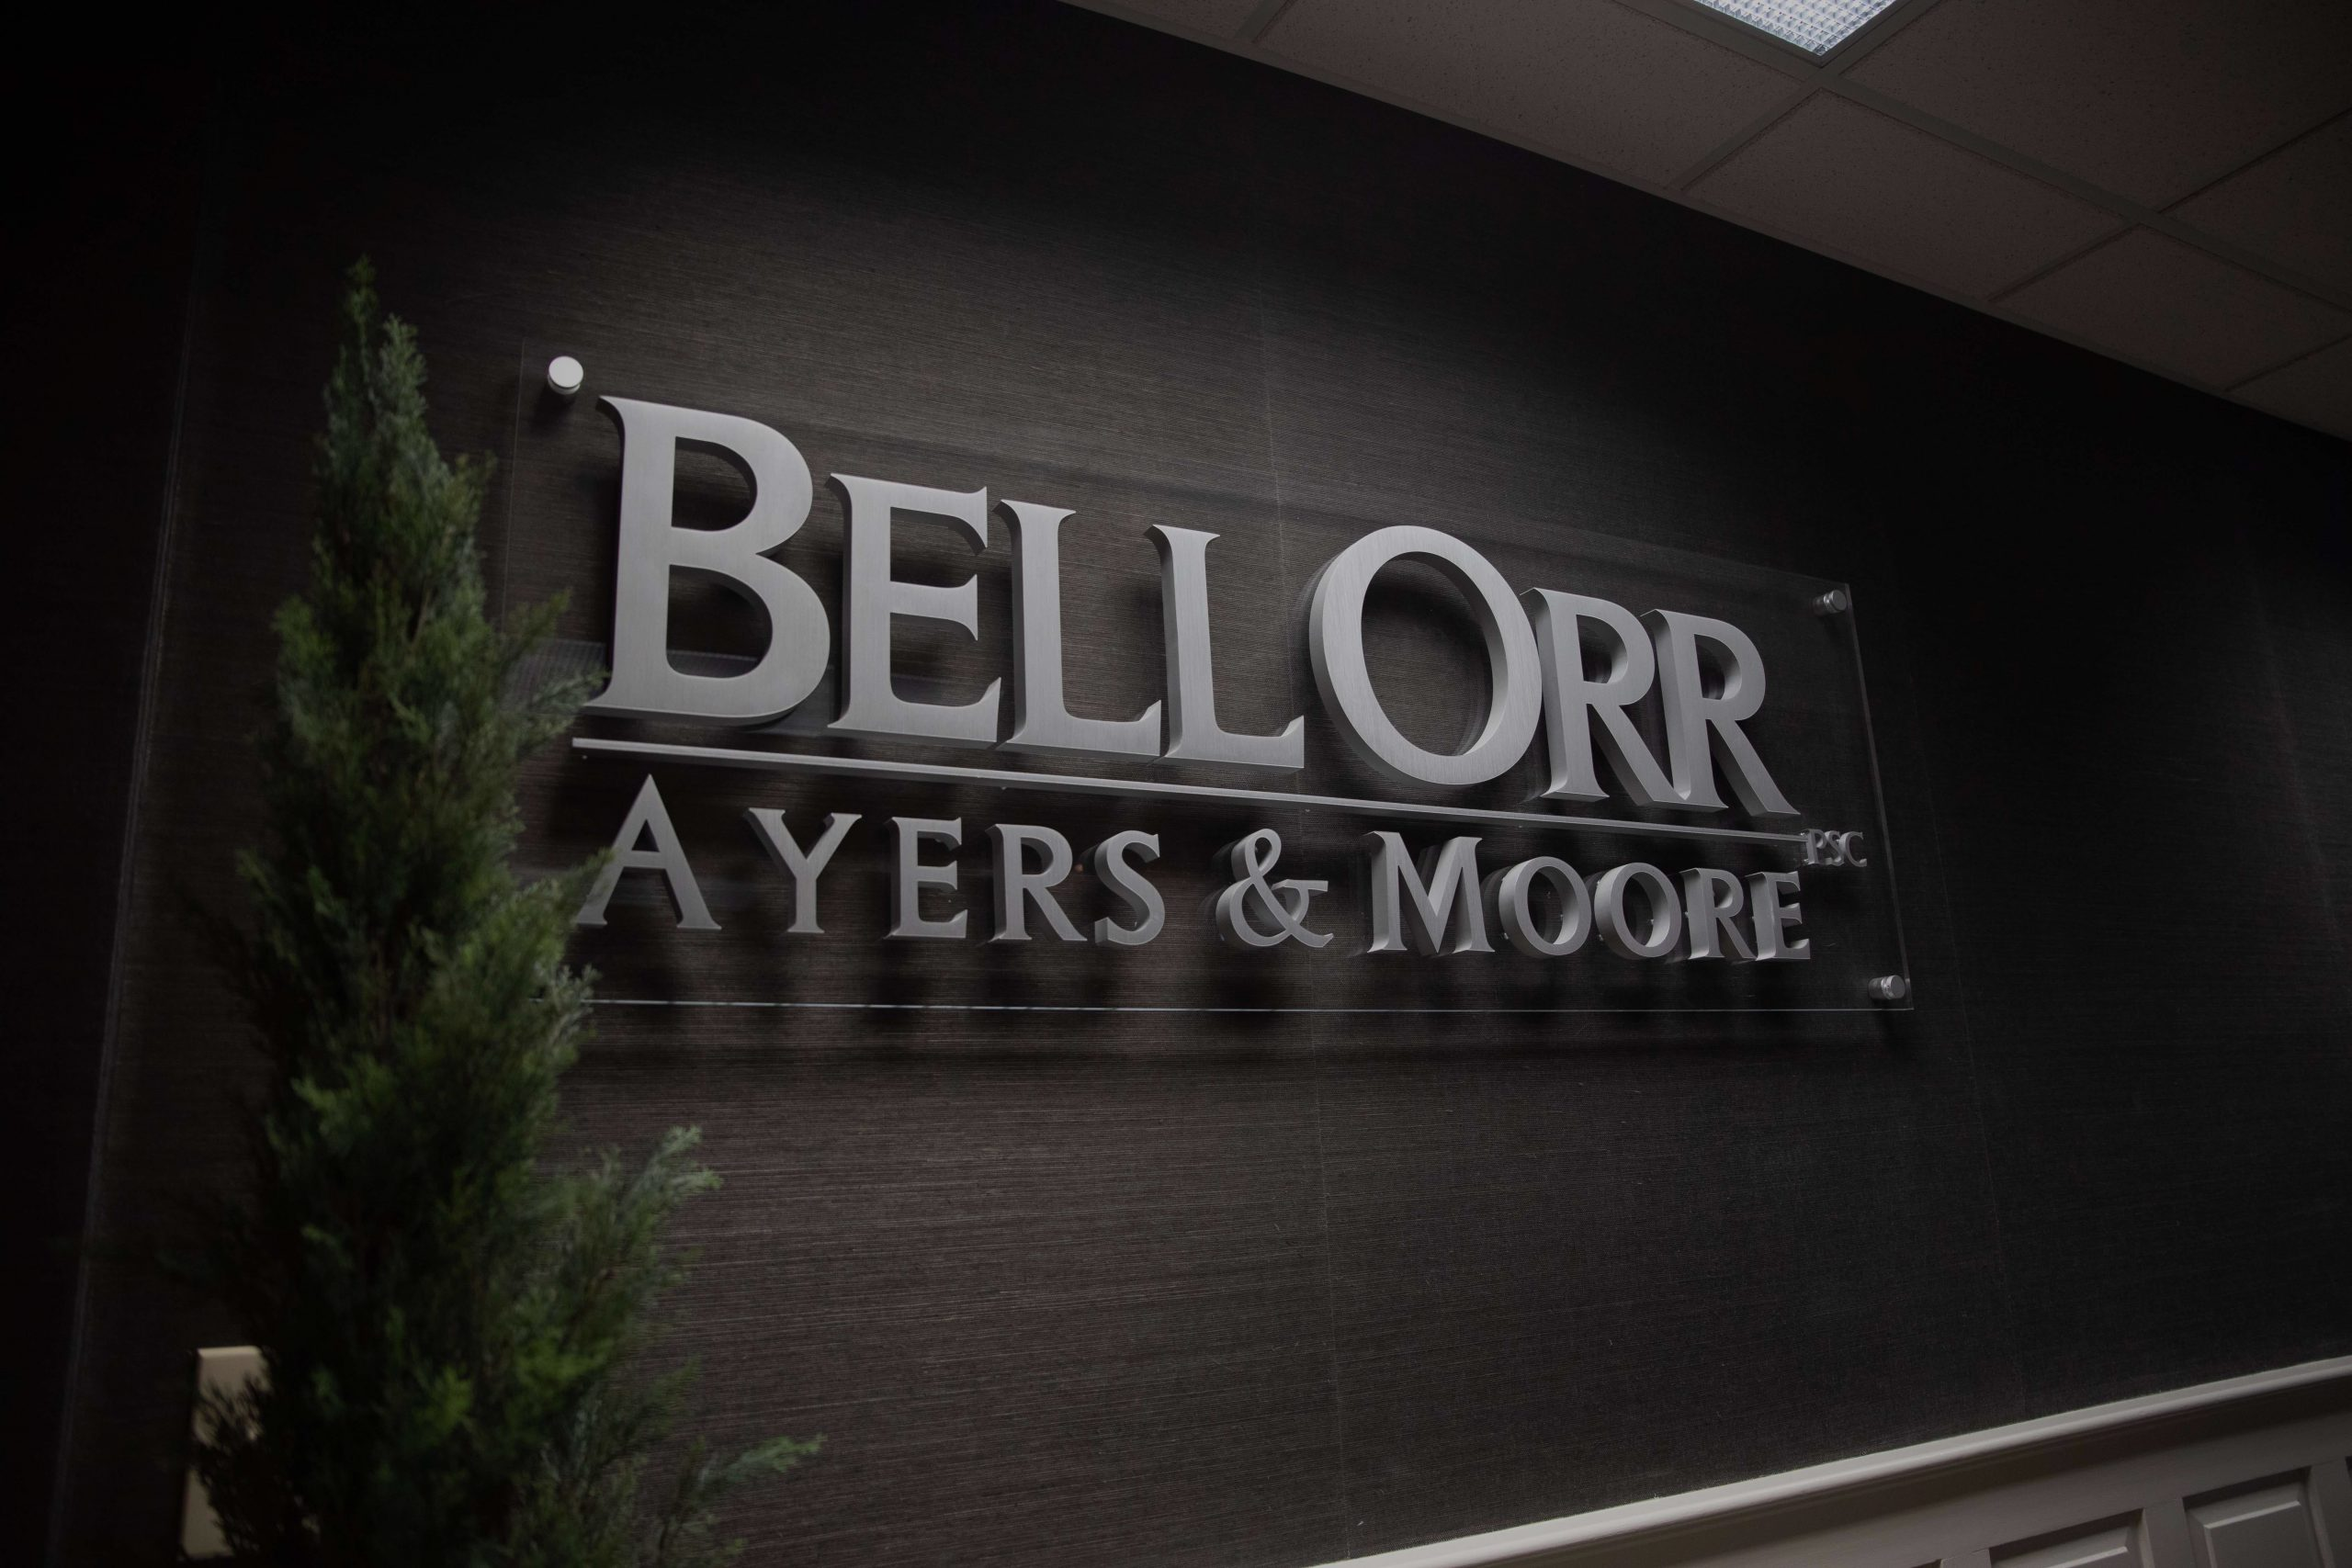 Bell Orr Ayers & Moore Attorneys at Law About Us